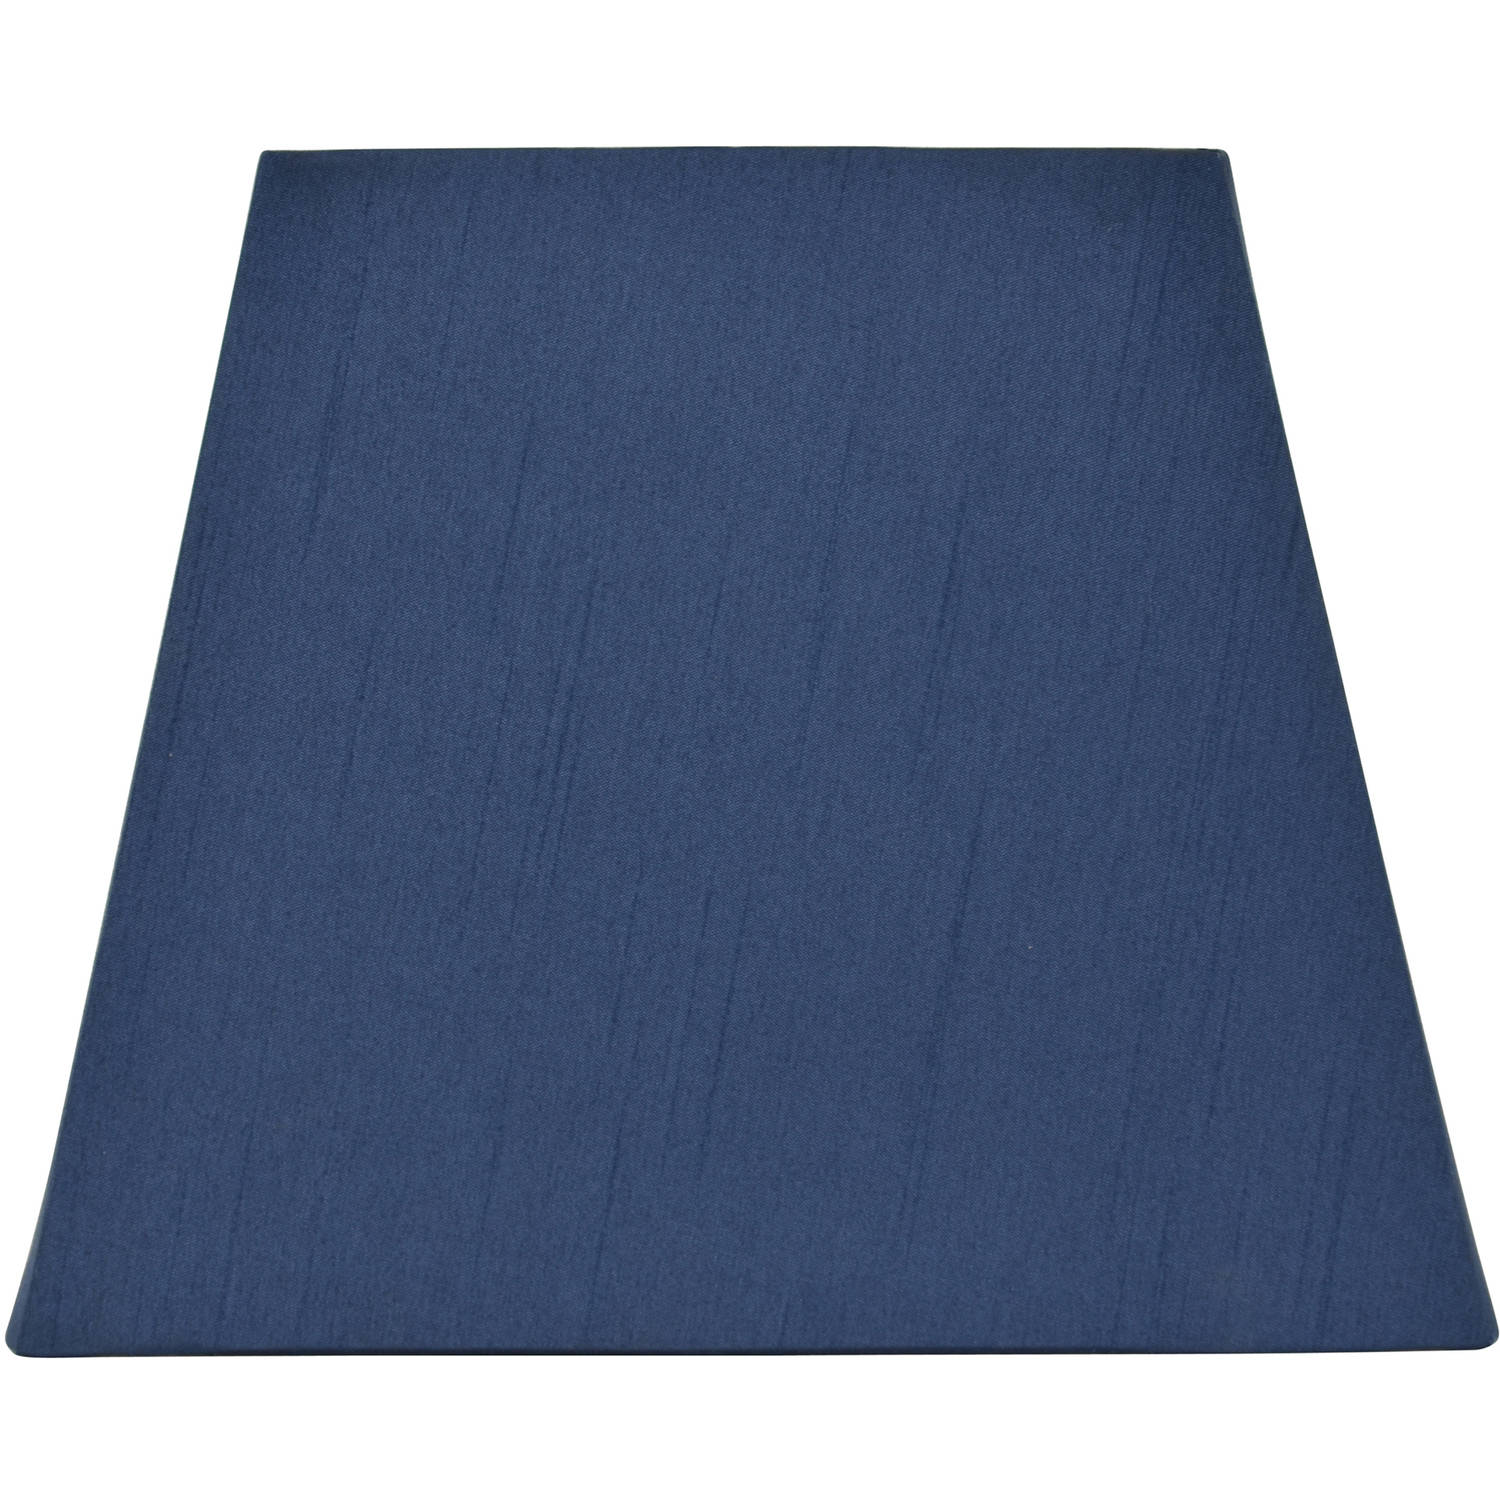 Square bedside lamp shades better lamps square lamp shades - Better Homes And Gardens Navy Square Empire Accent Shade